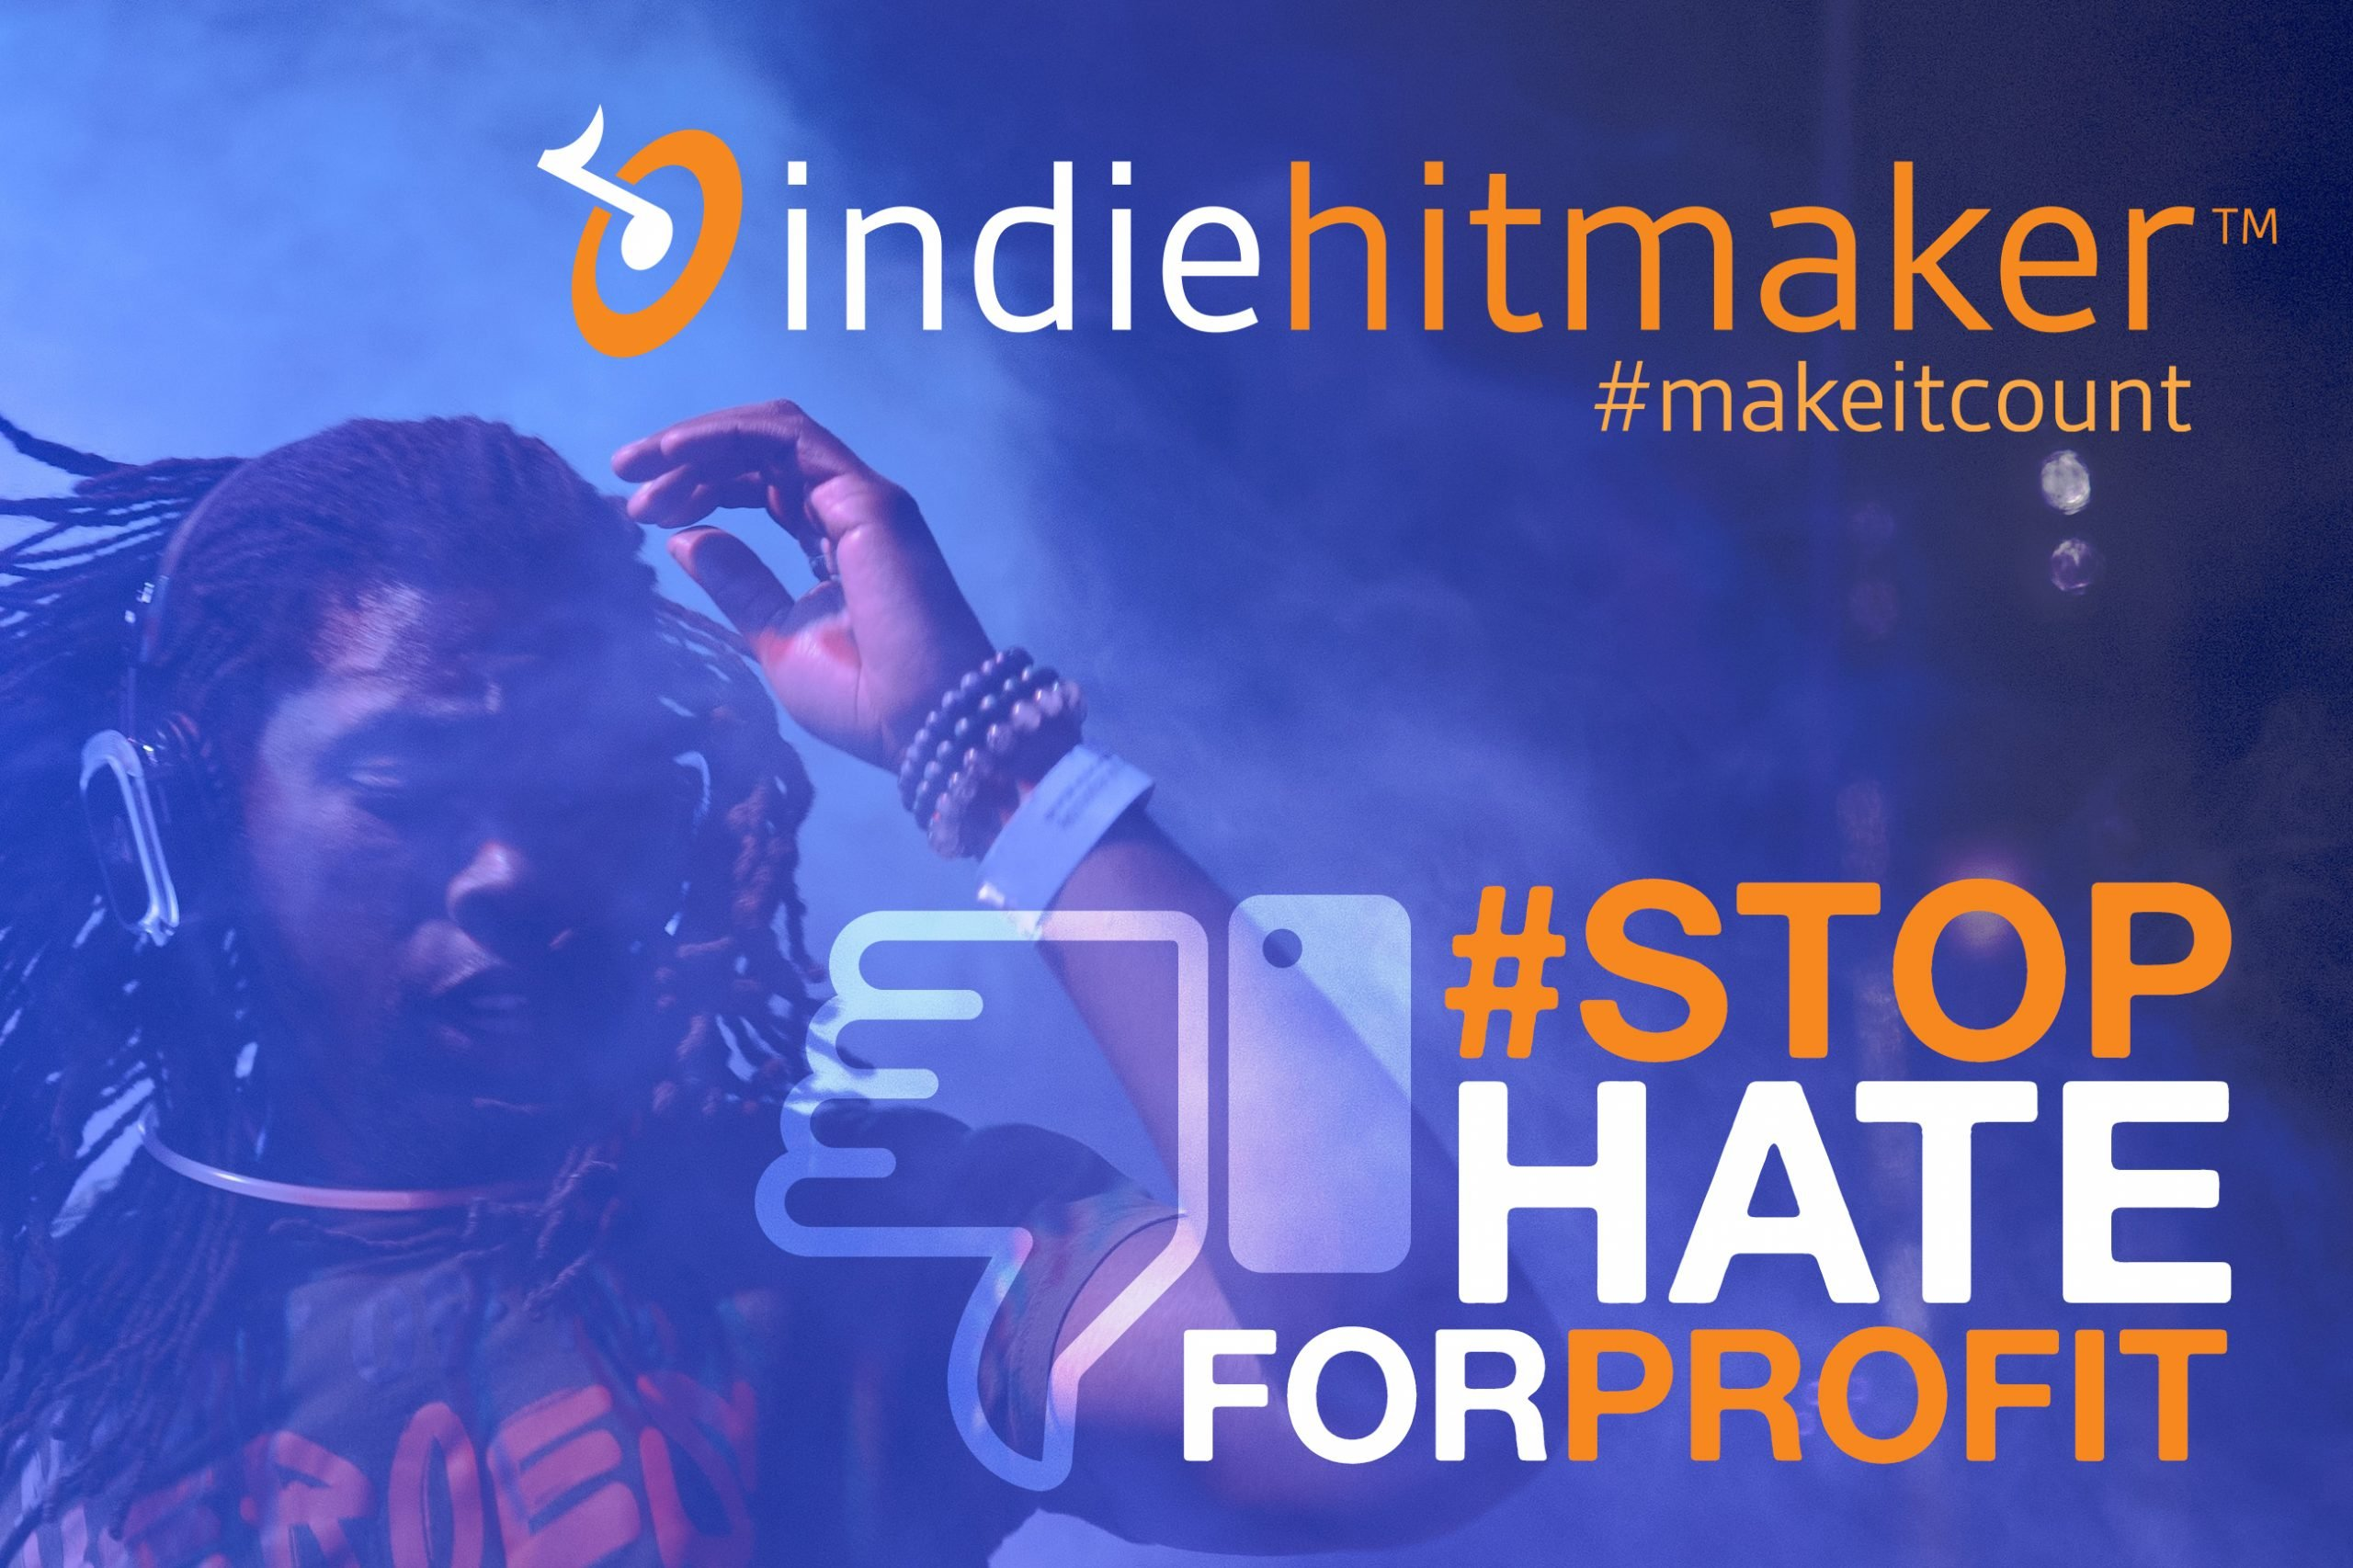 Indiehitmaker Joins Facebook Boycott to Stop Hate For Profit